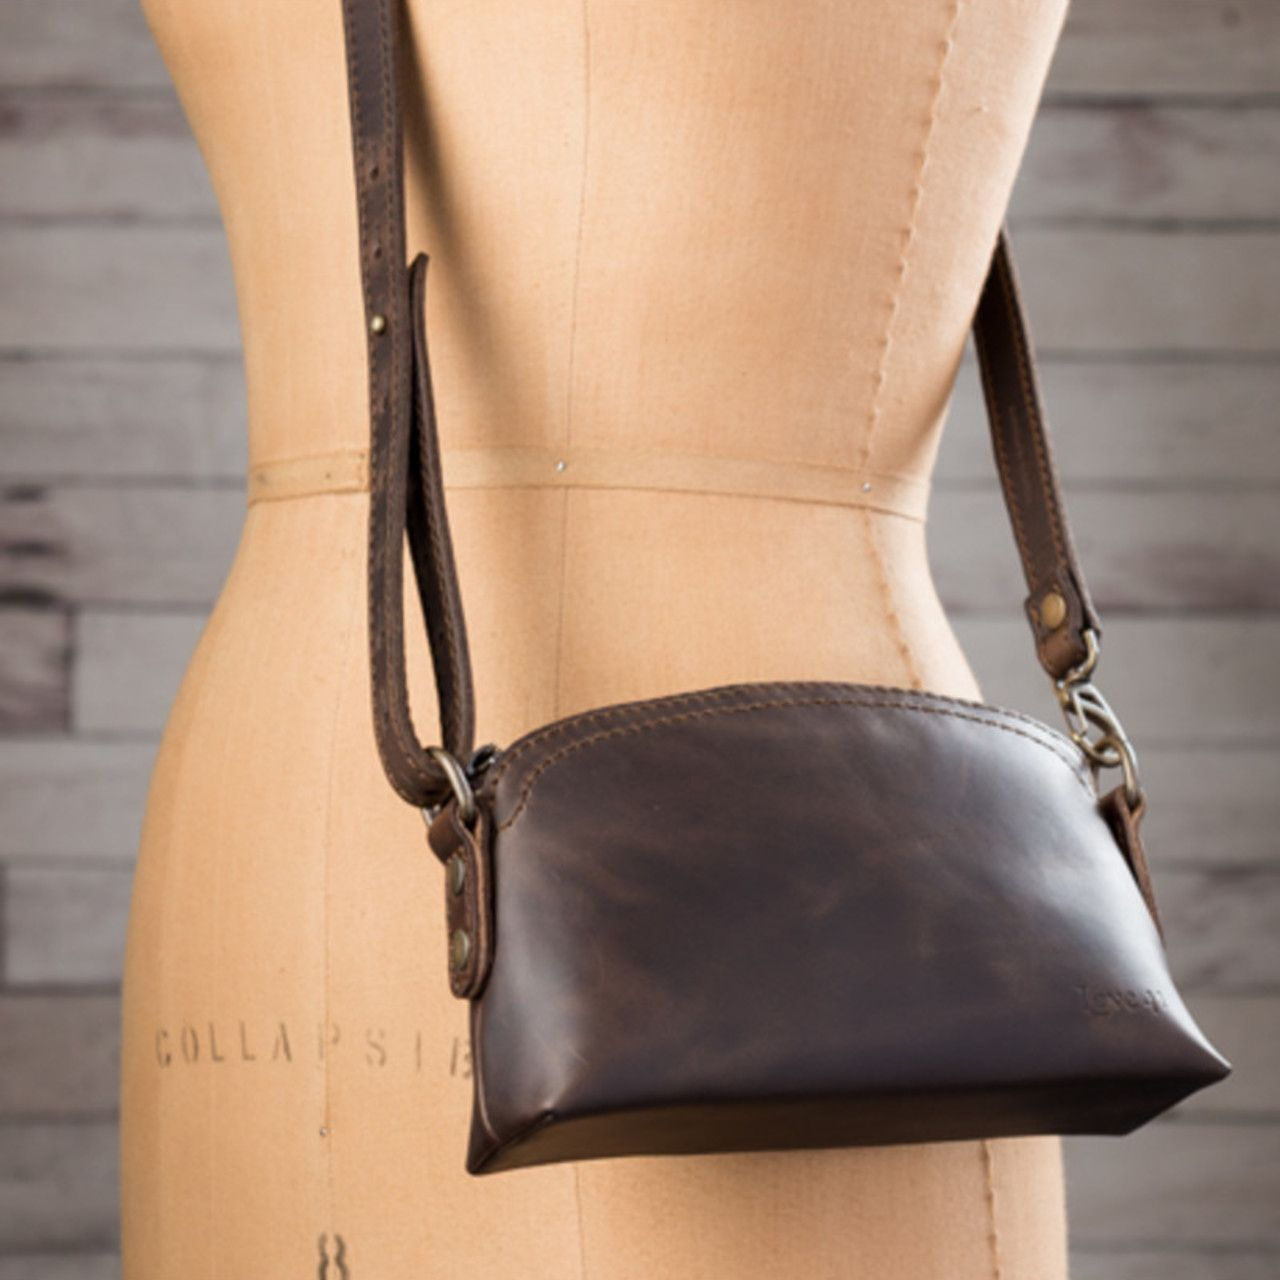 Leather Cosmetic Bag in dark coffee brown